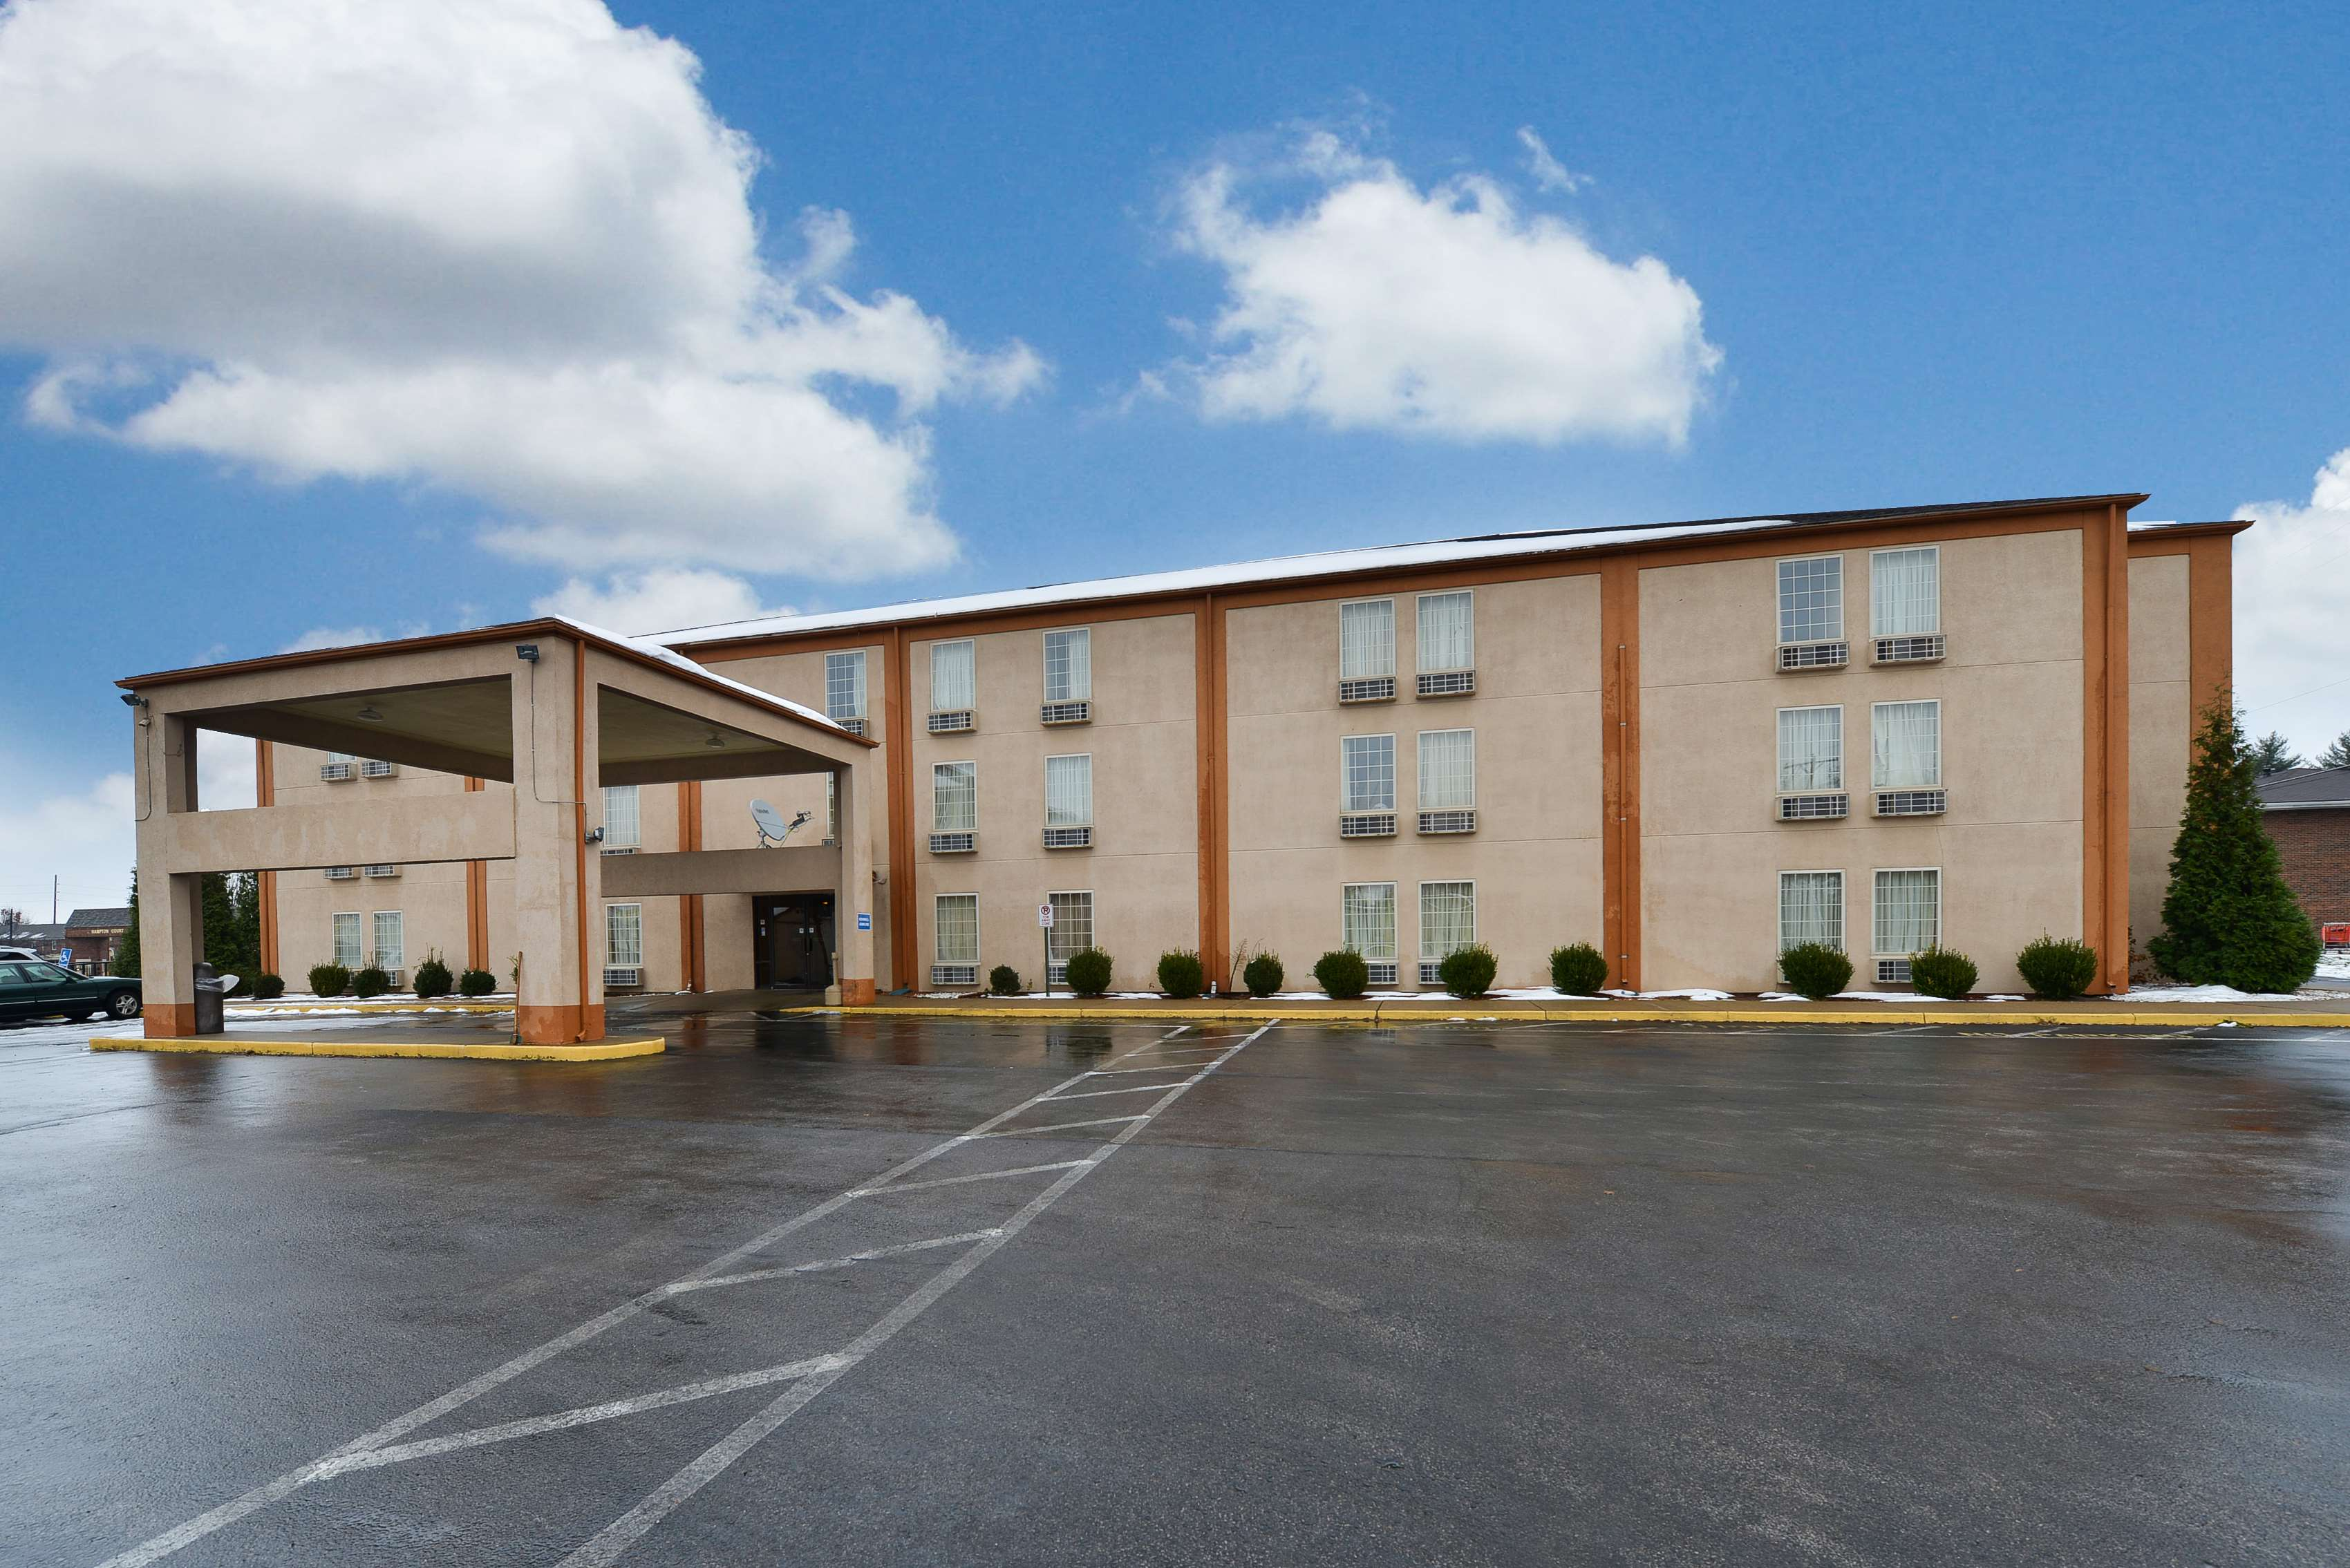 Hotels Near University Of Evansville Indiana